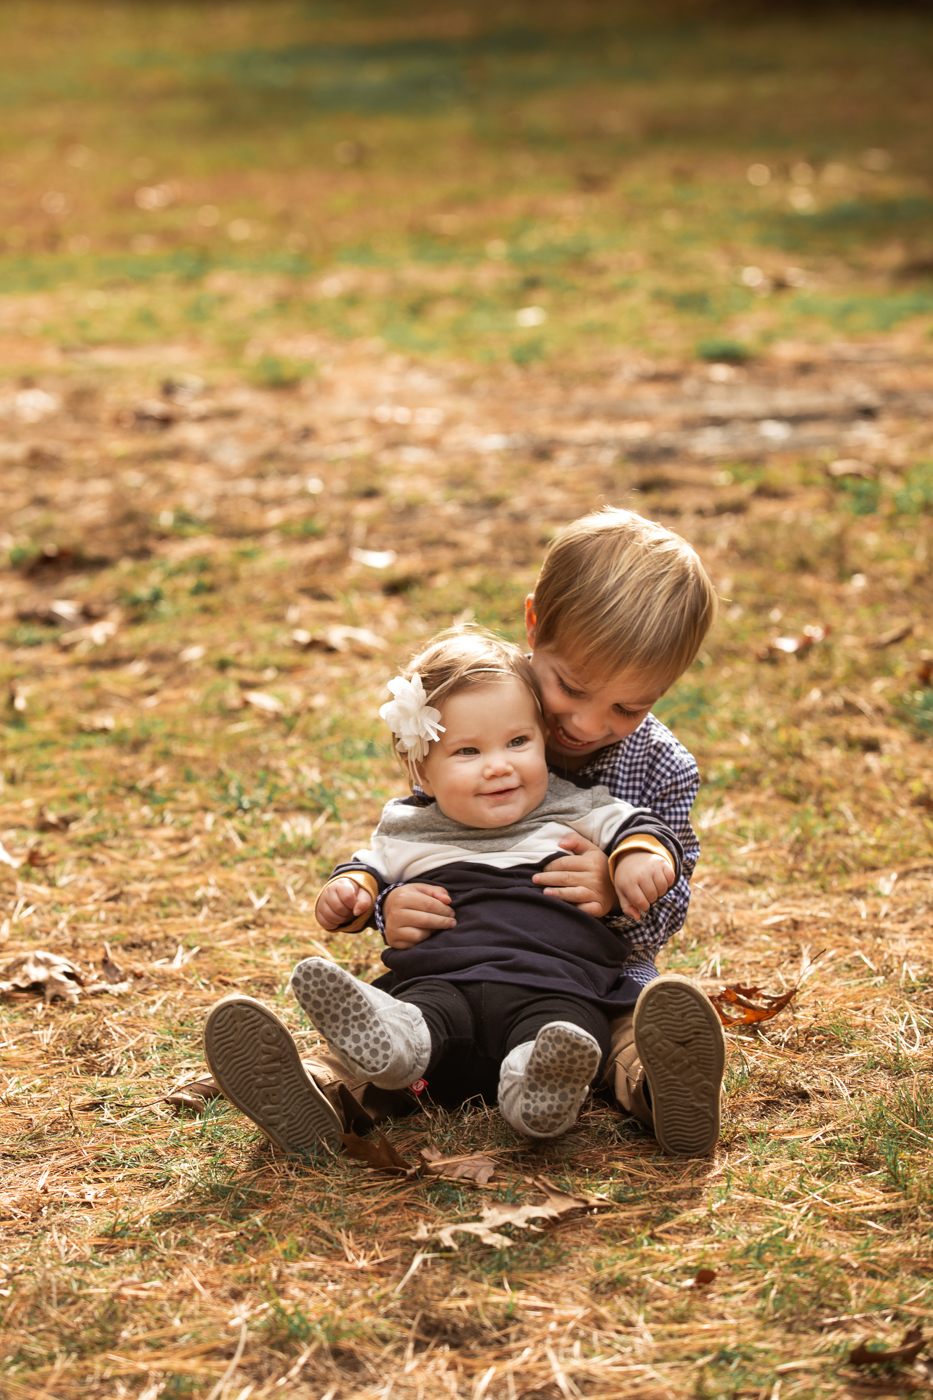 Toddlers photography massachusetts